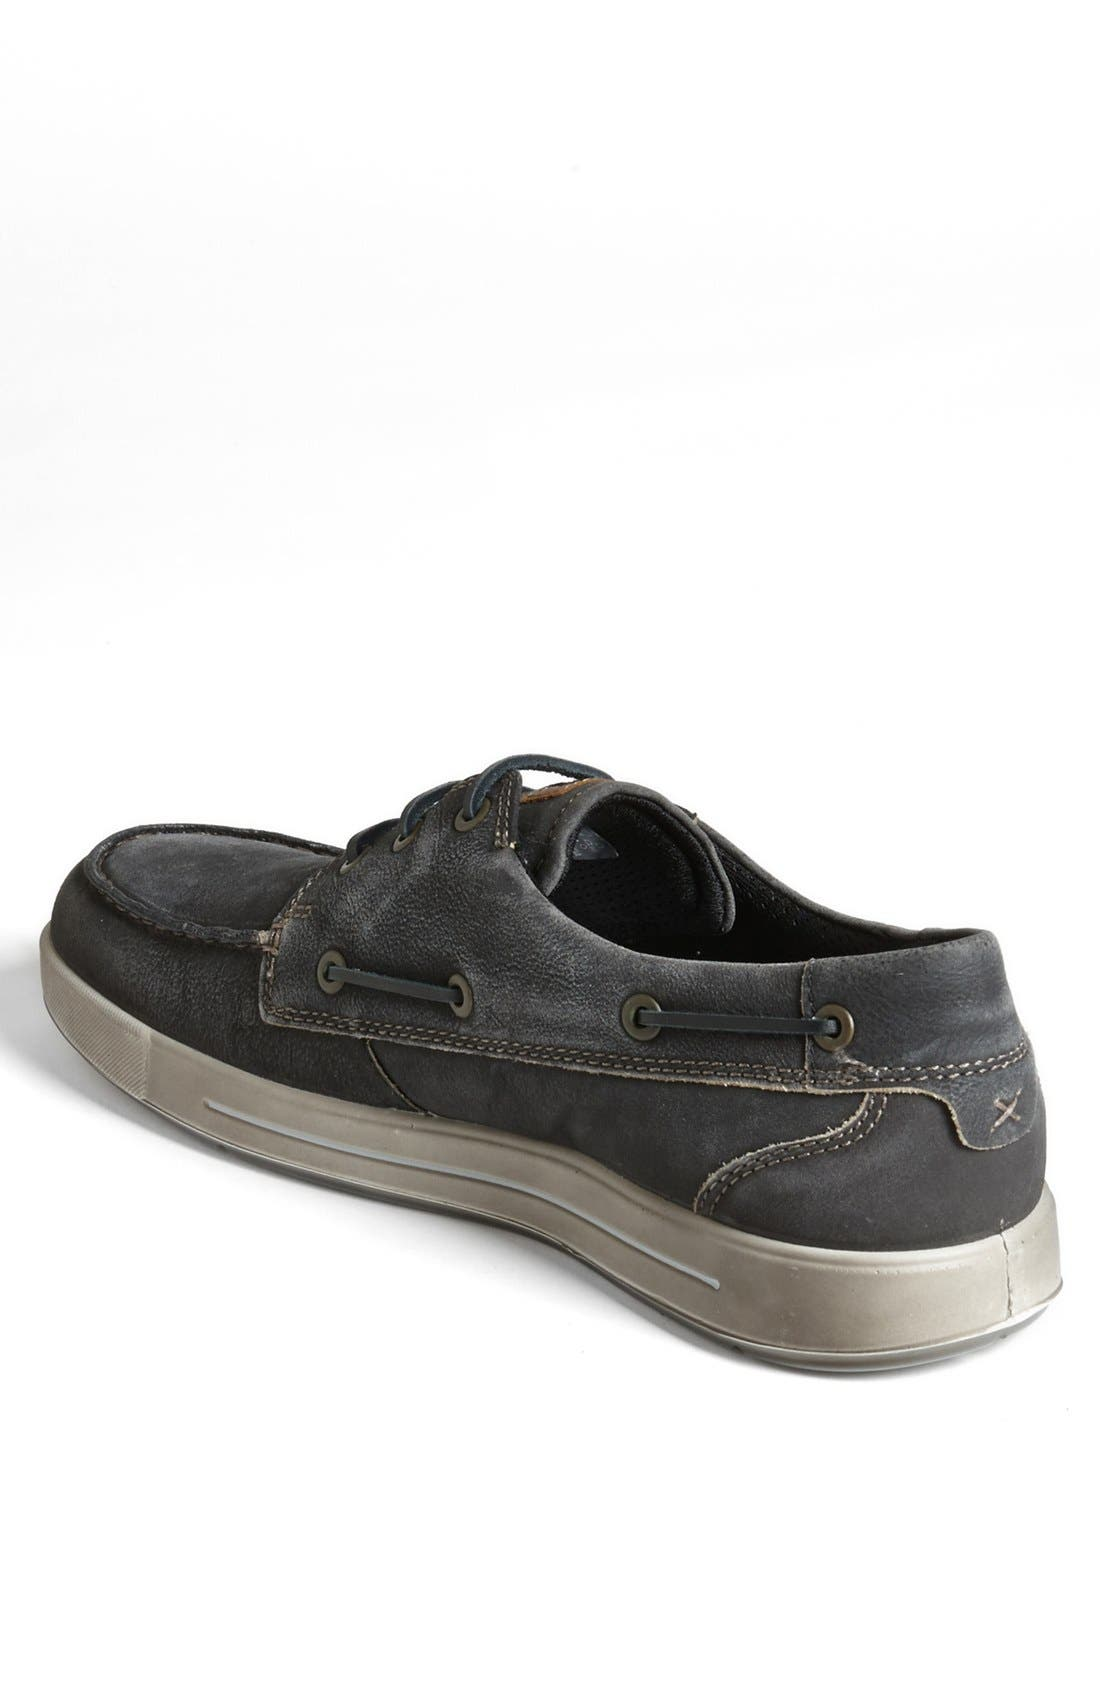 Alternate Image 2  - ECCO 'Androw' Boat Shoe (Men)